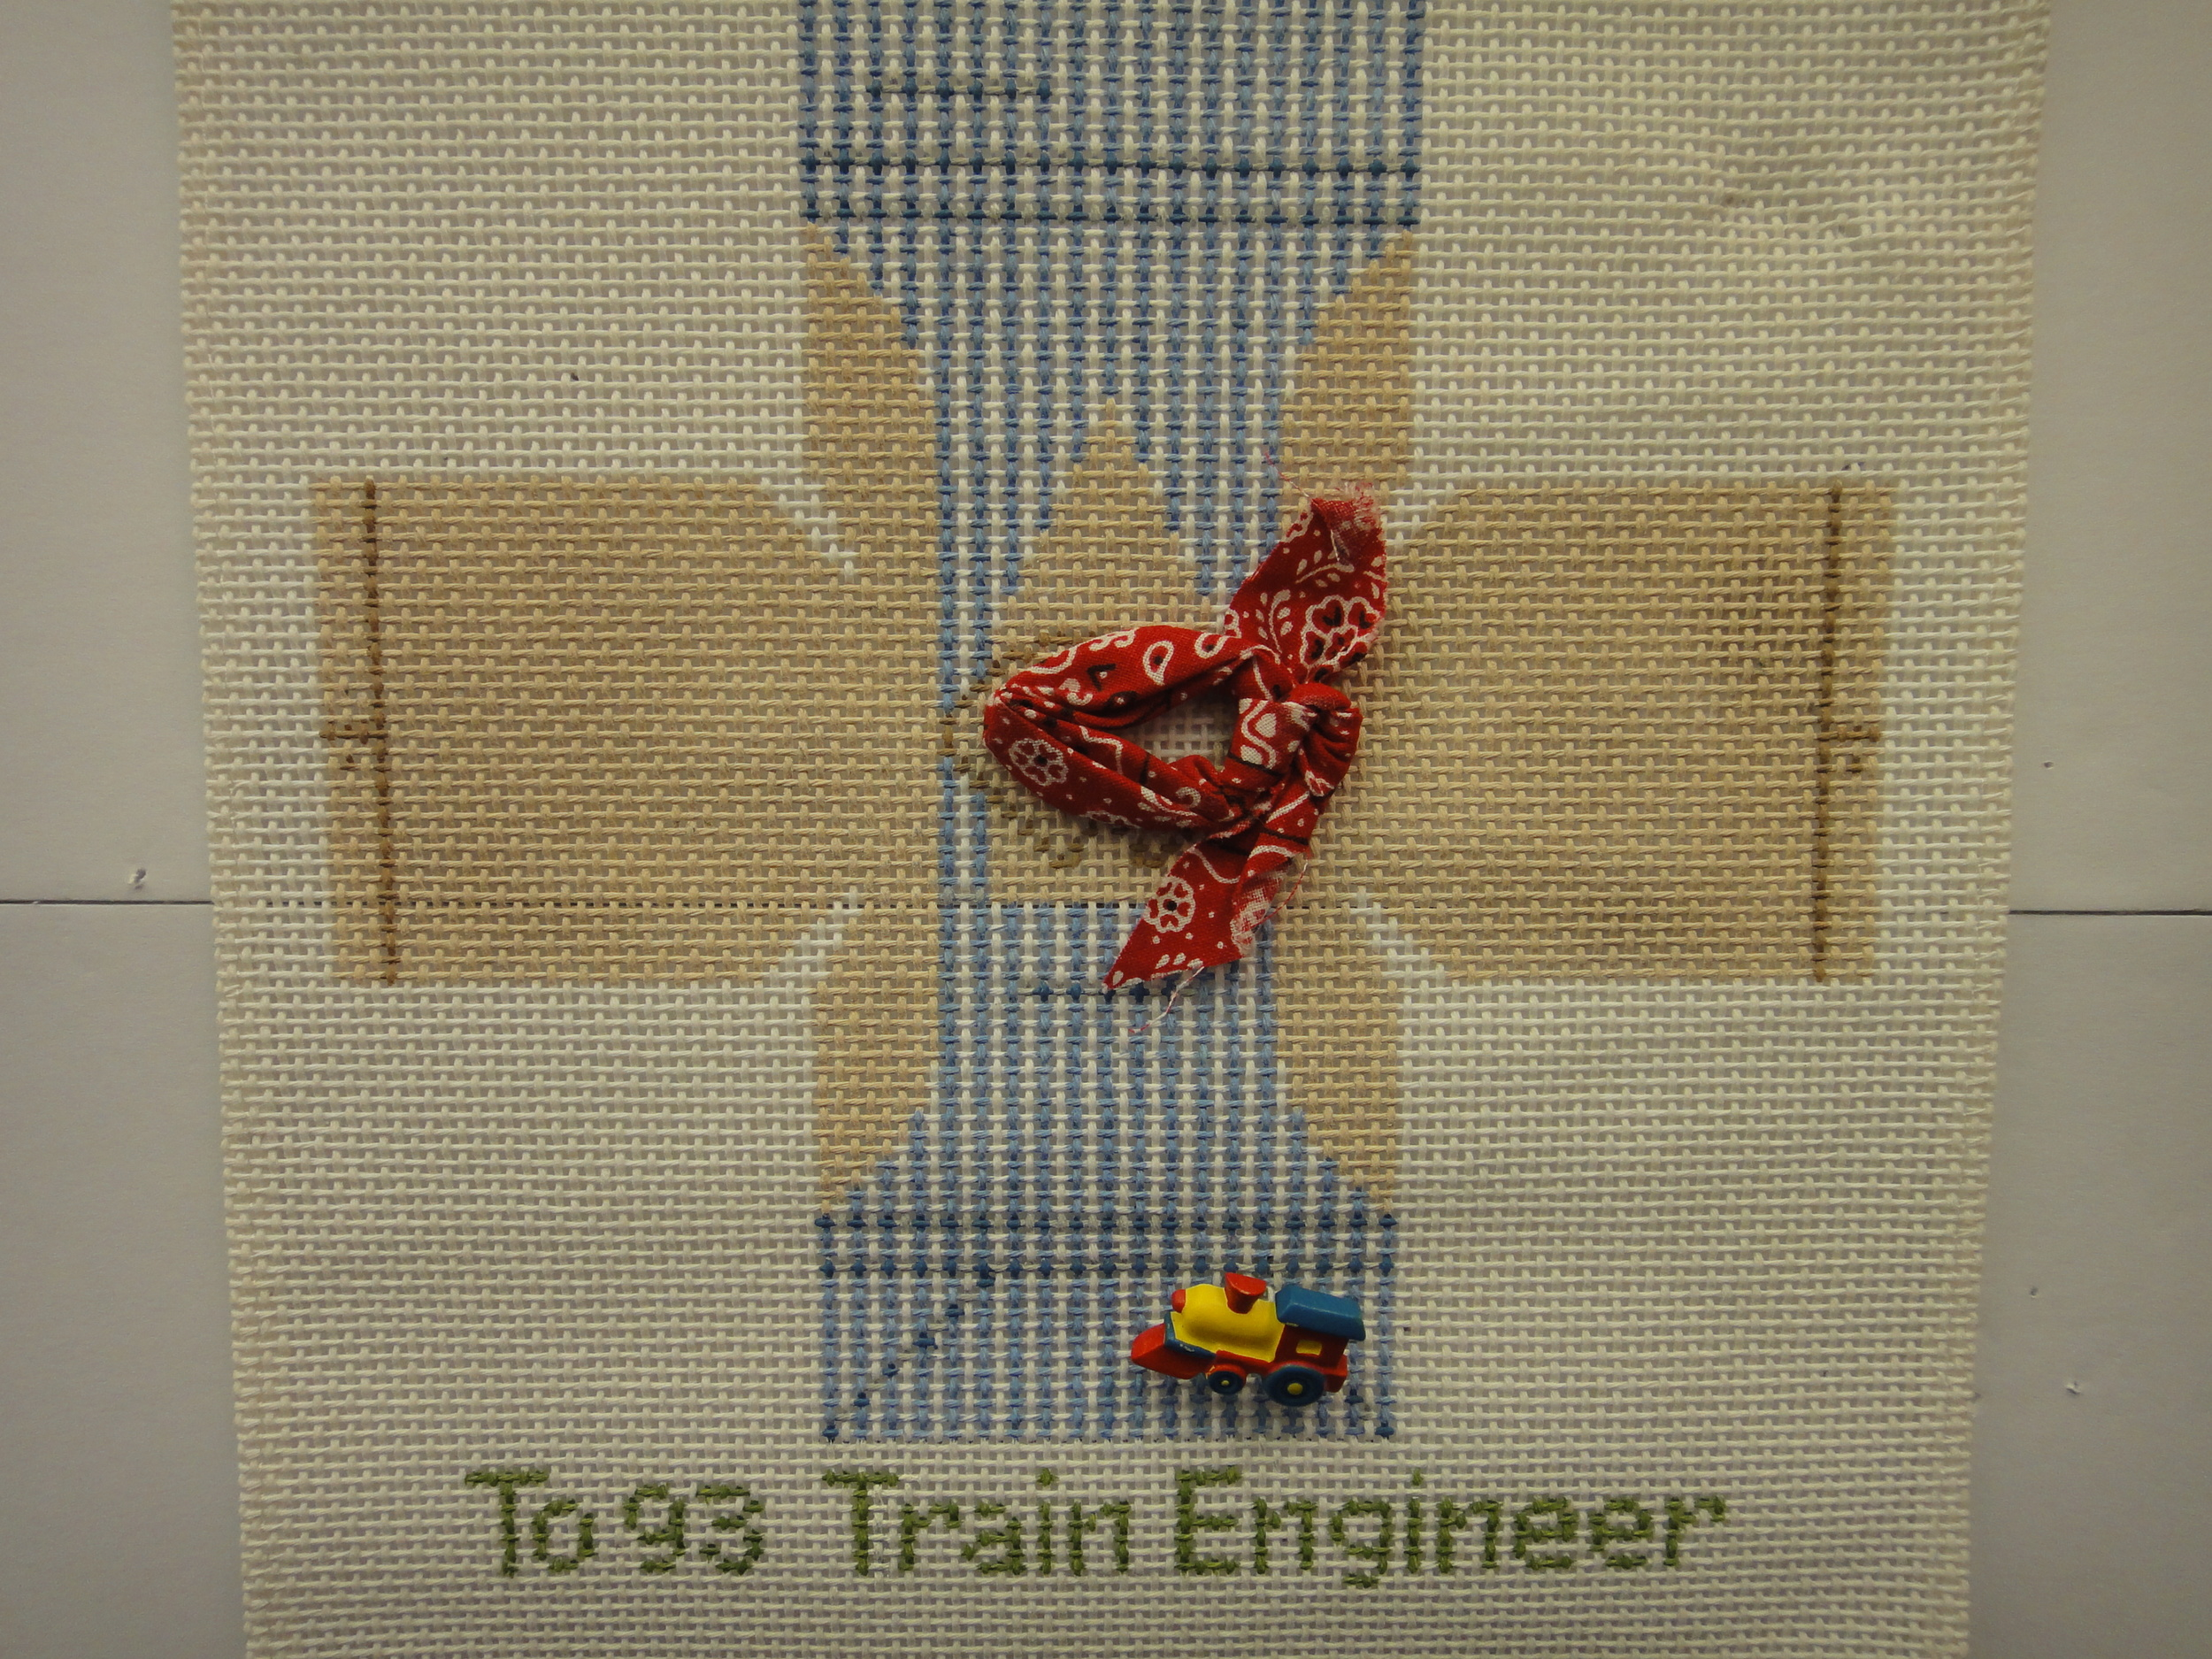 To93 Train Engineer